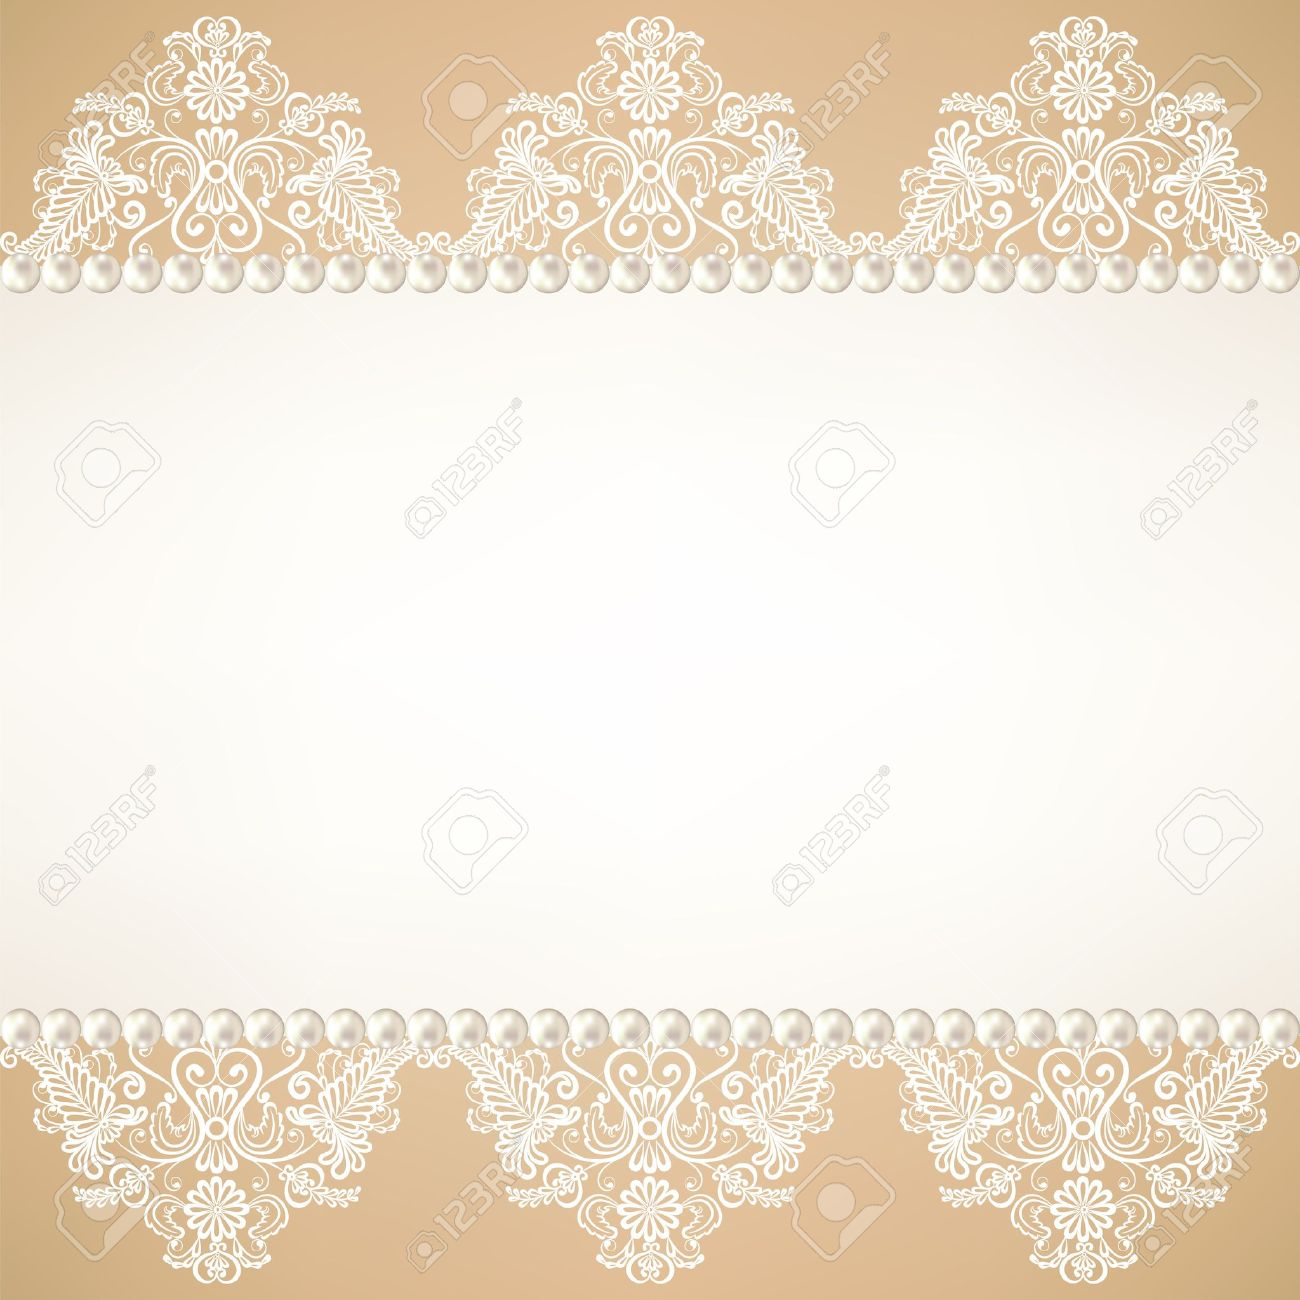 Template For Wedding Invitation Or Greeting Card With Lace Fabric Background Pearls Stock Vector